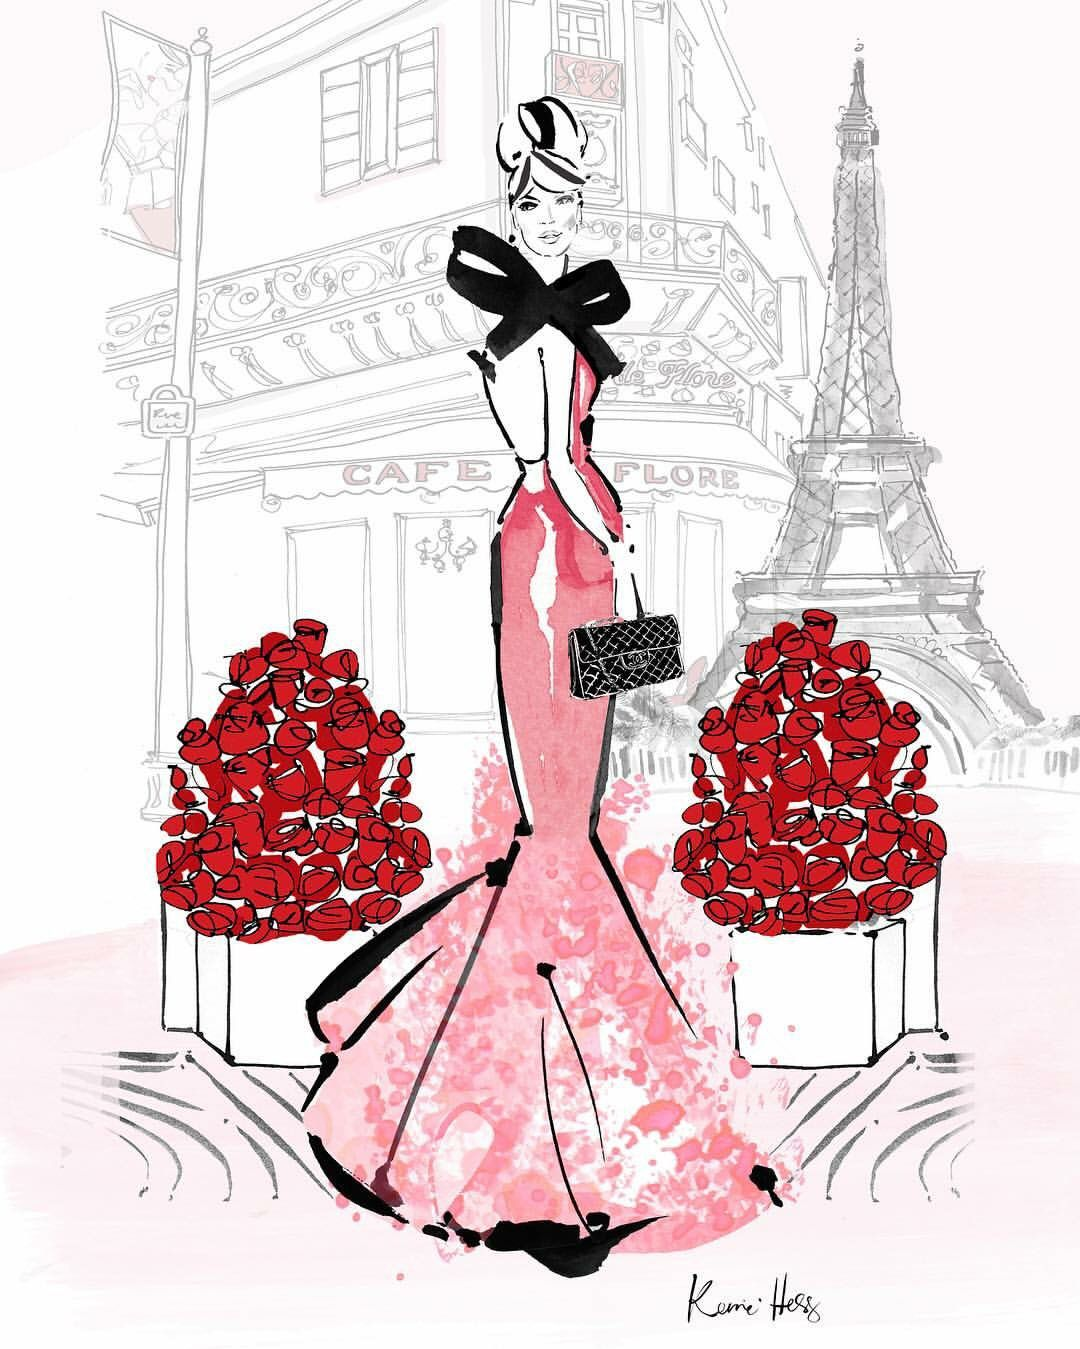 A Paris Apartment And A Paris Graphic: Pin By Akilah Smith On Megan And Kerrie Hess